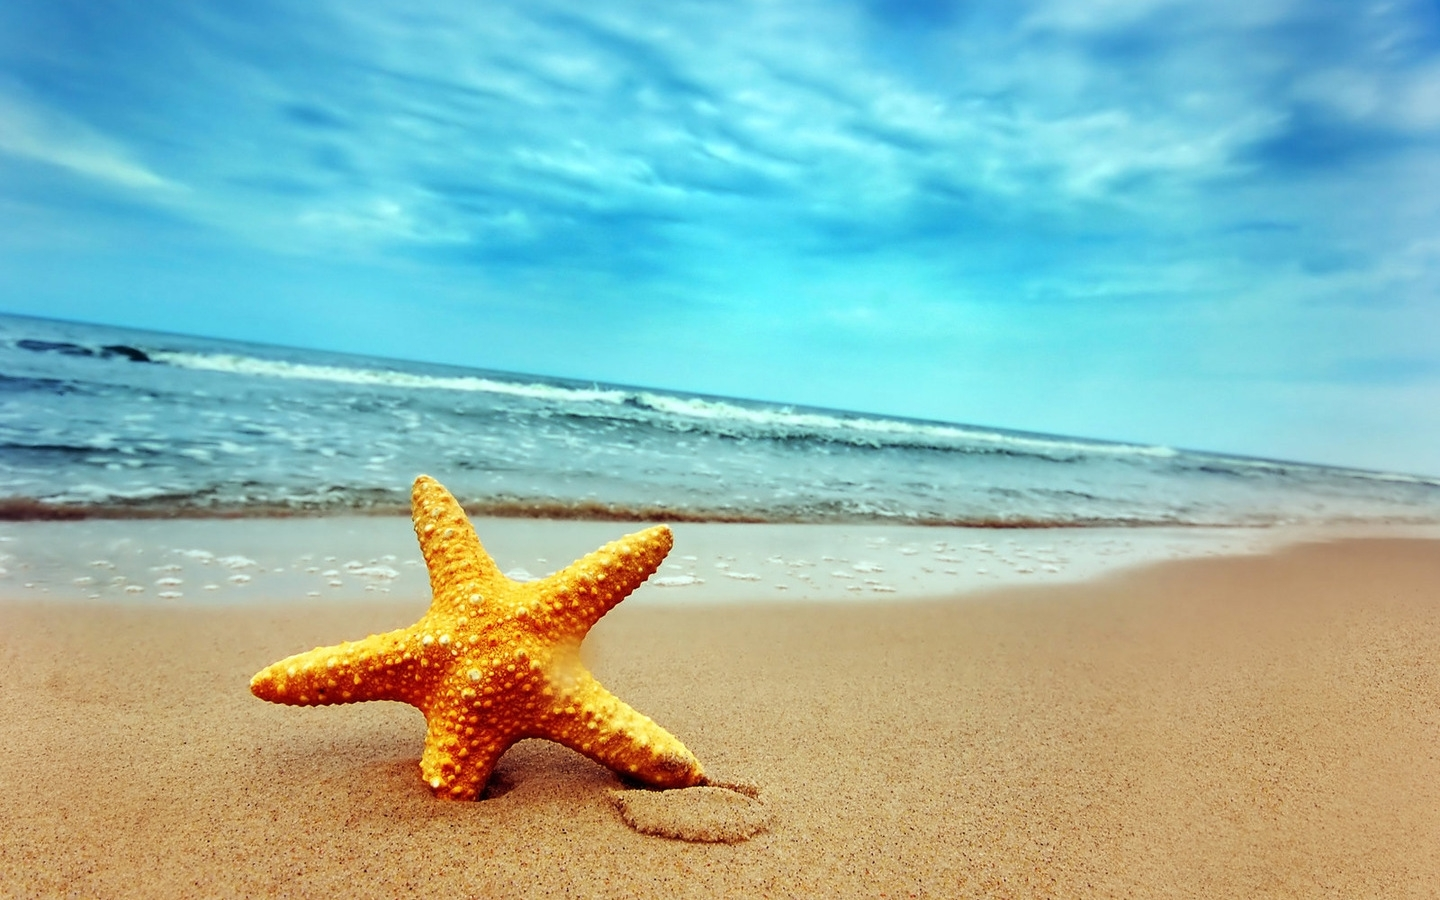 29315 download wallpaper Background, Sea, Beach, Starfish screensavers and pictures for free